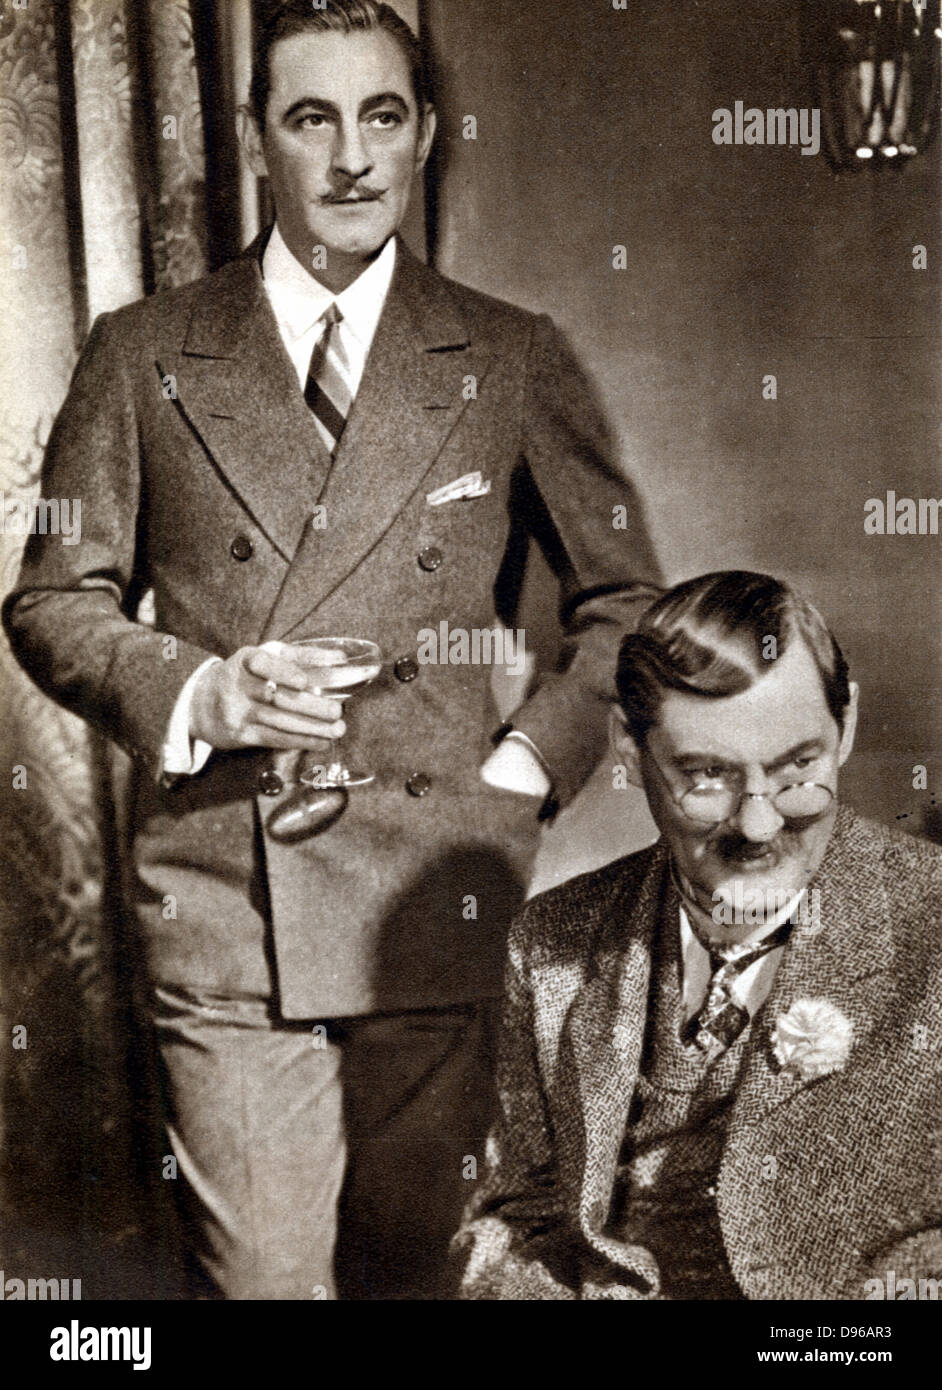 John (1882-1942) and Lionel (1878-1954) Barrymore; American stage and screen actors; brothers of Ethel Barrymore - Stock Image